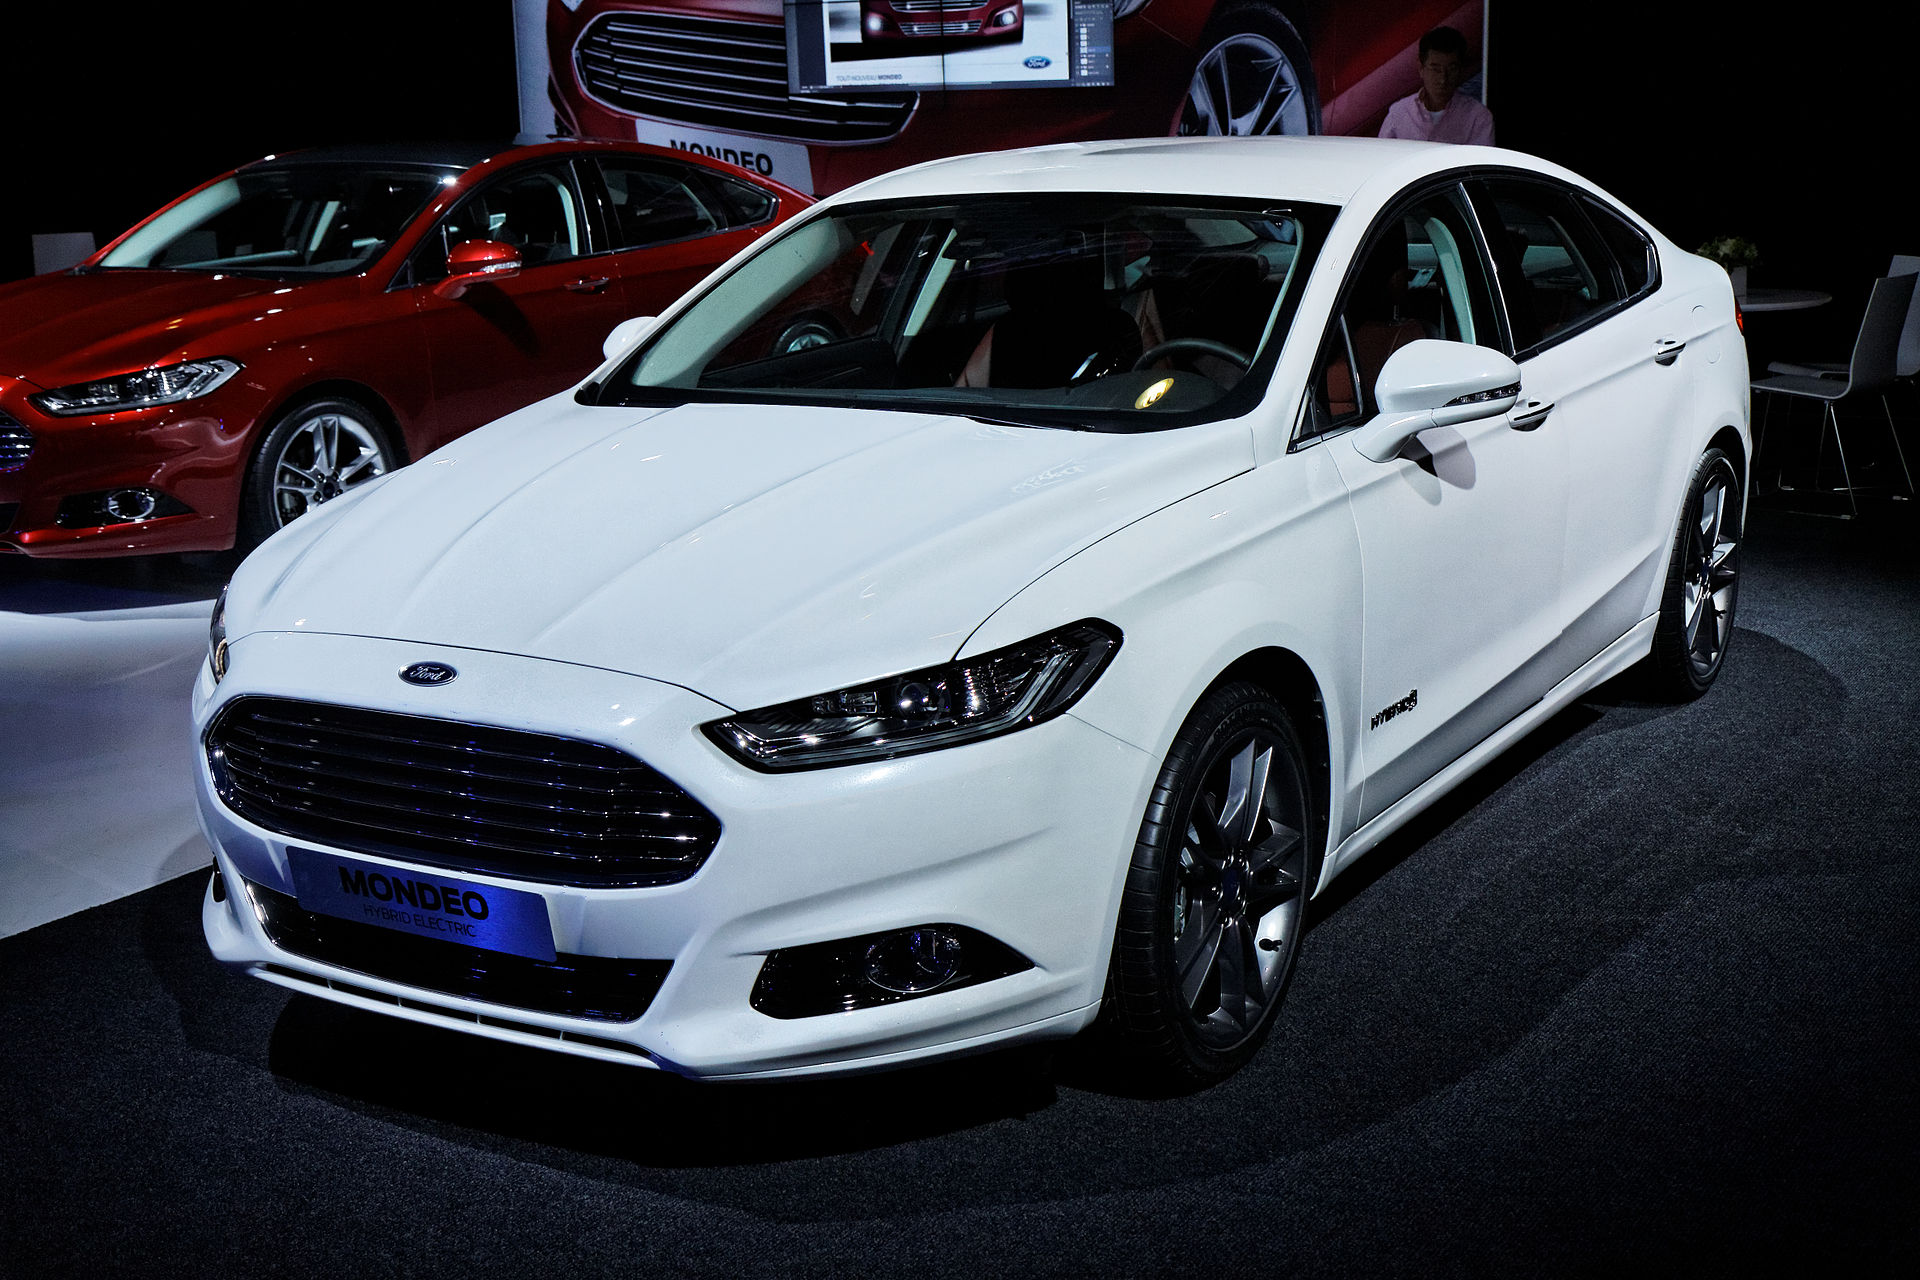 Ford_Mondeo_-_Mondial_de_l'Automobile_de_Paris_2012_-_001